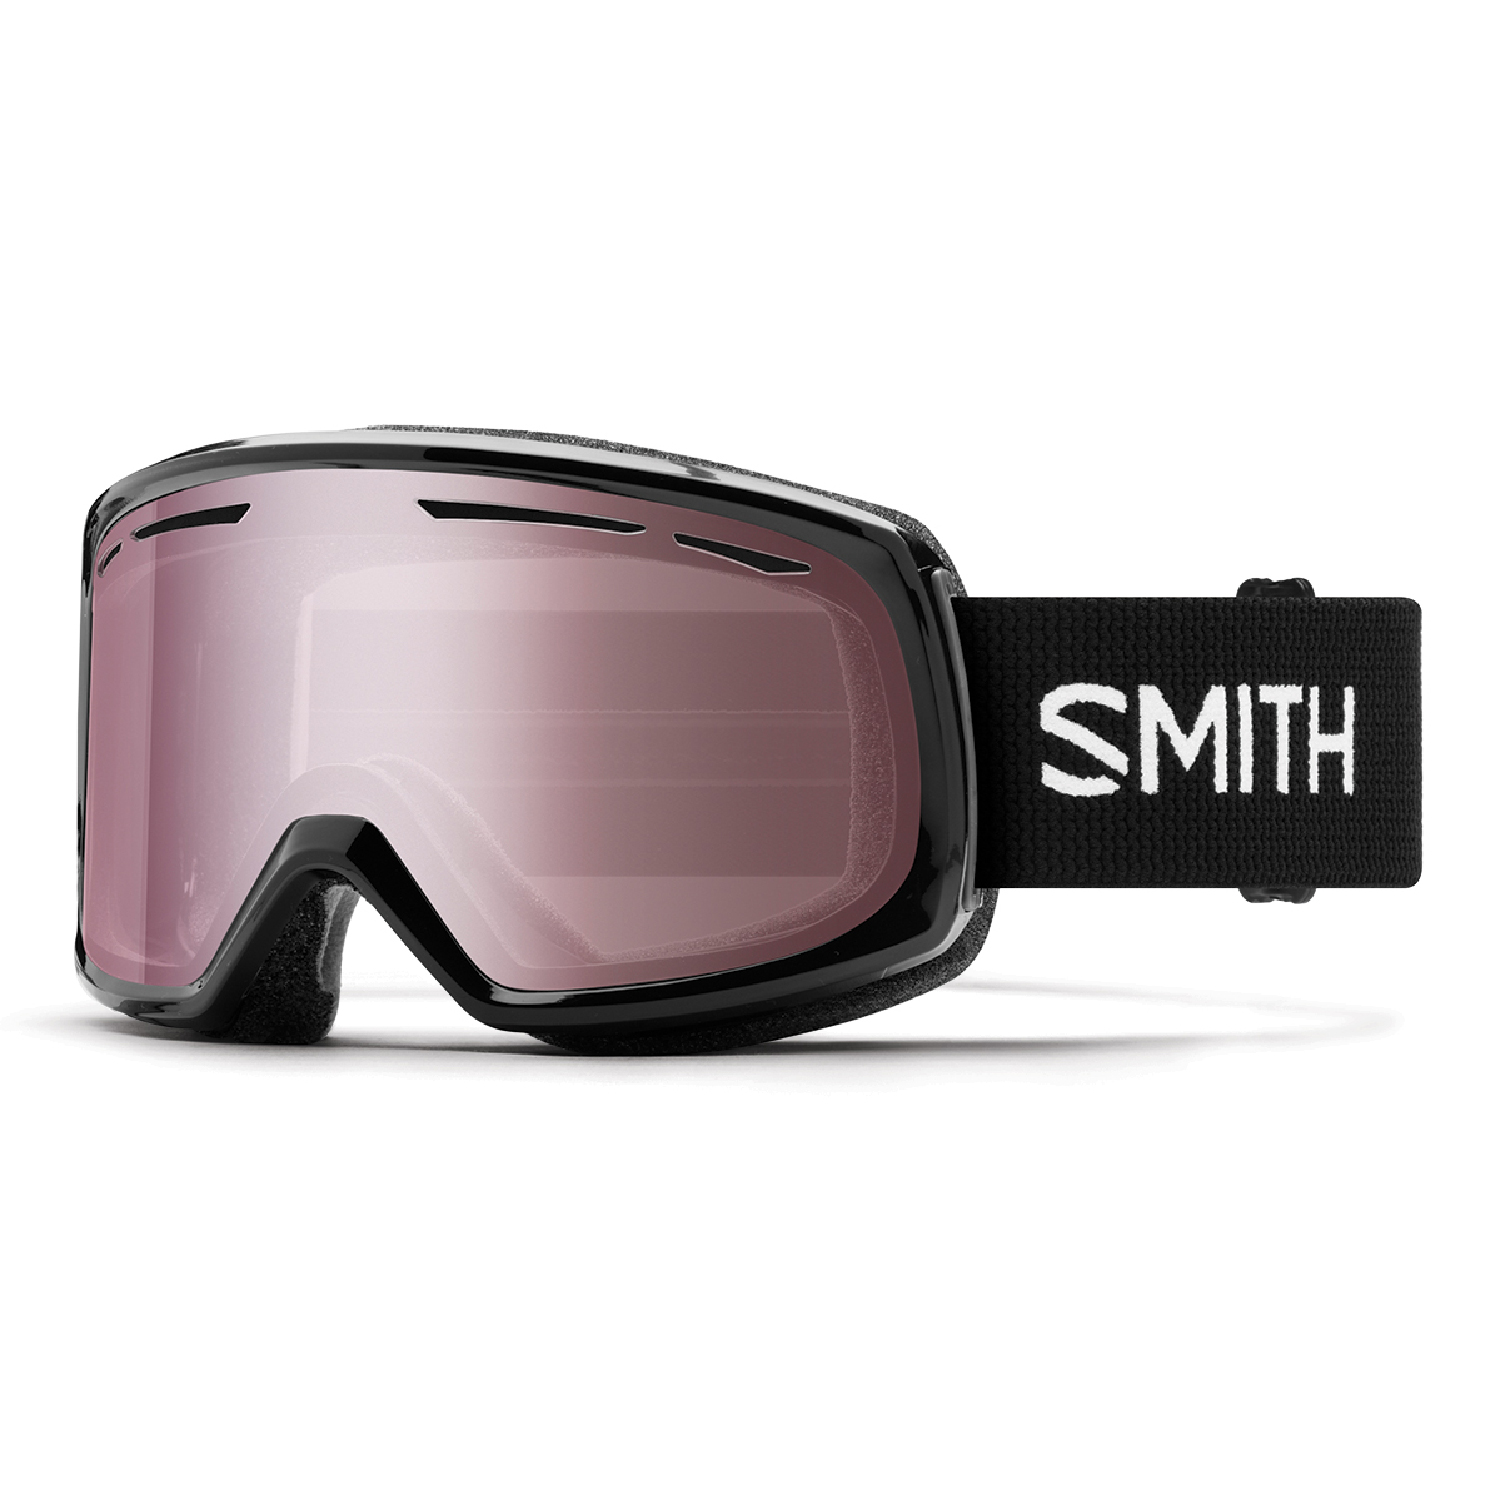 Smith Optics 2019 Drift (Black Ignitor Mirror) Women's Snowboard Goggles by